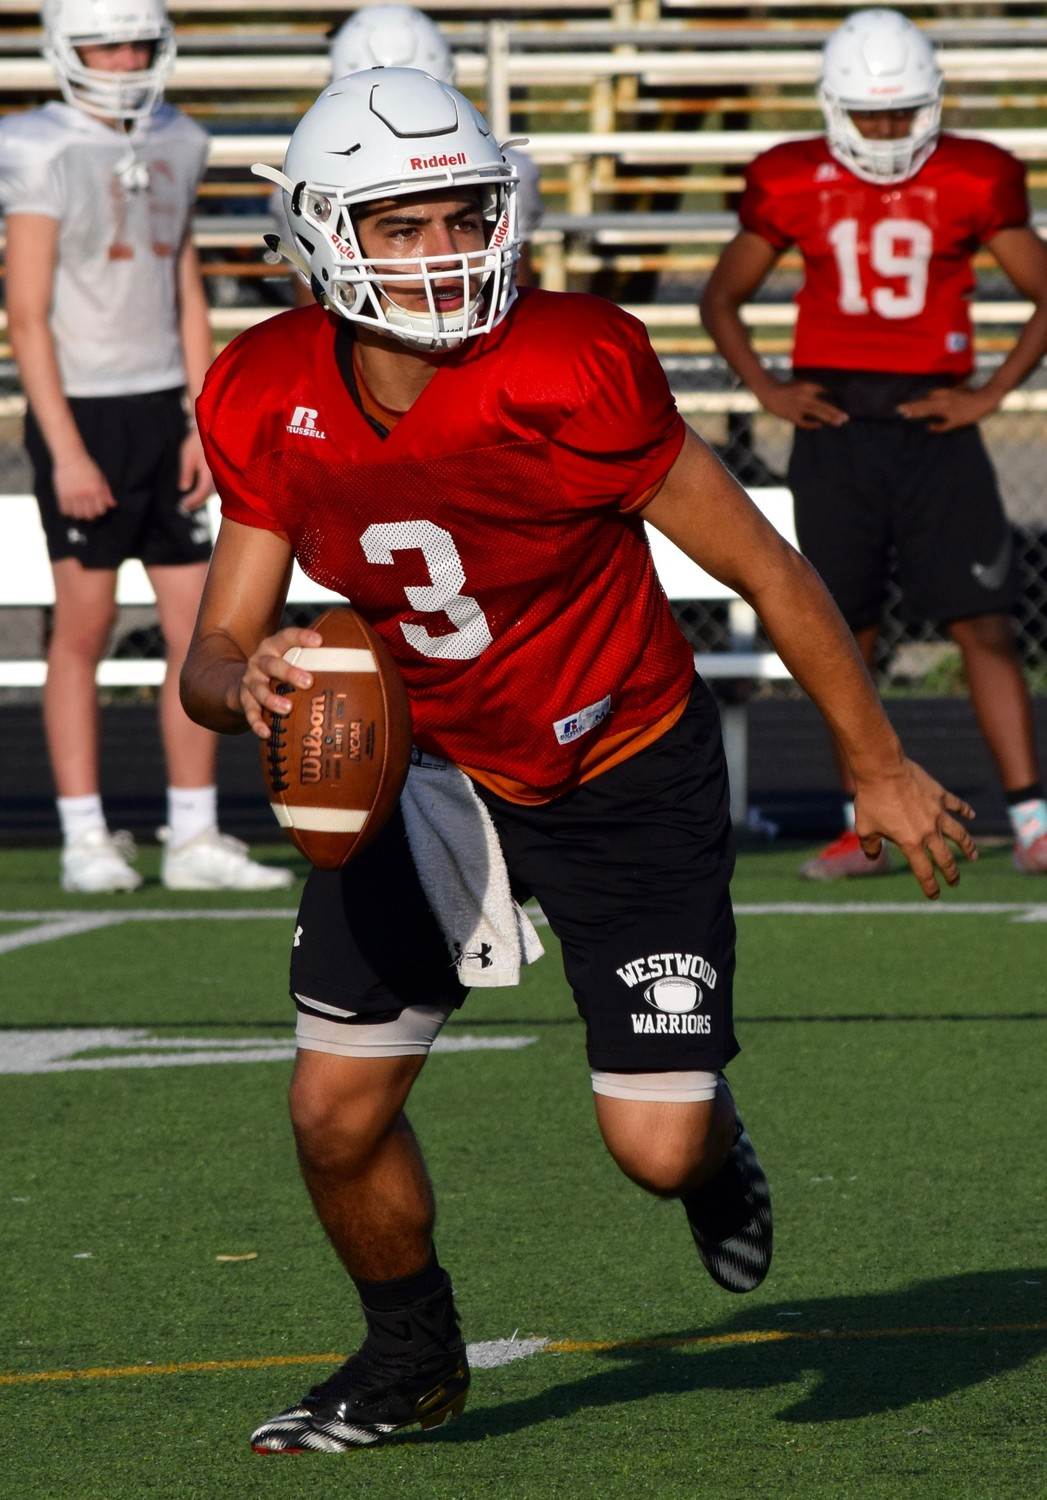 R.J. Martinez will take over the reigns at quarterback for Westwood this season for three-year starter Will Jennings.